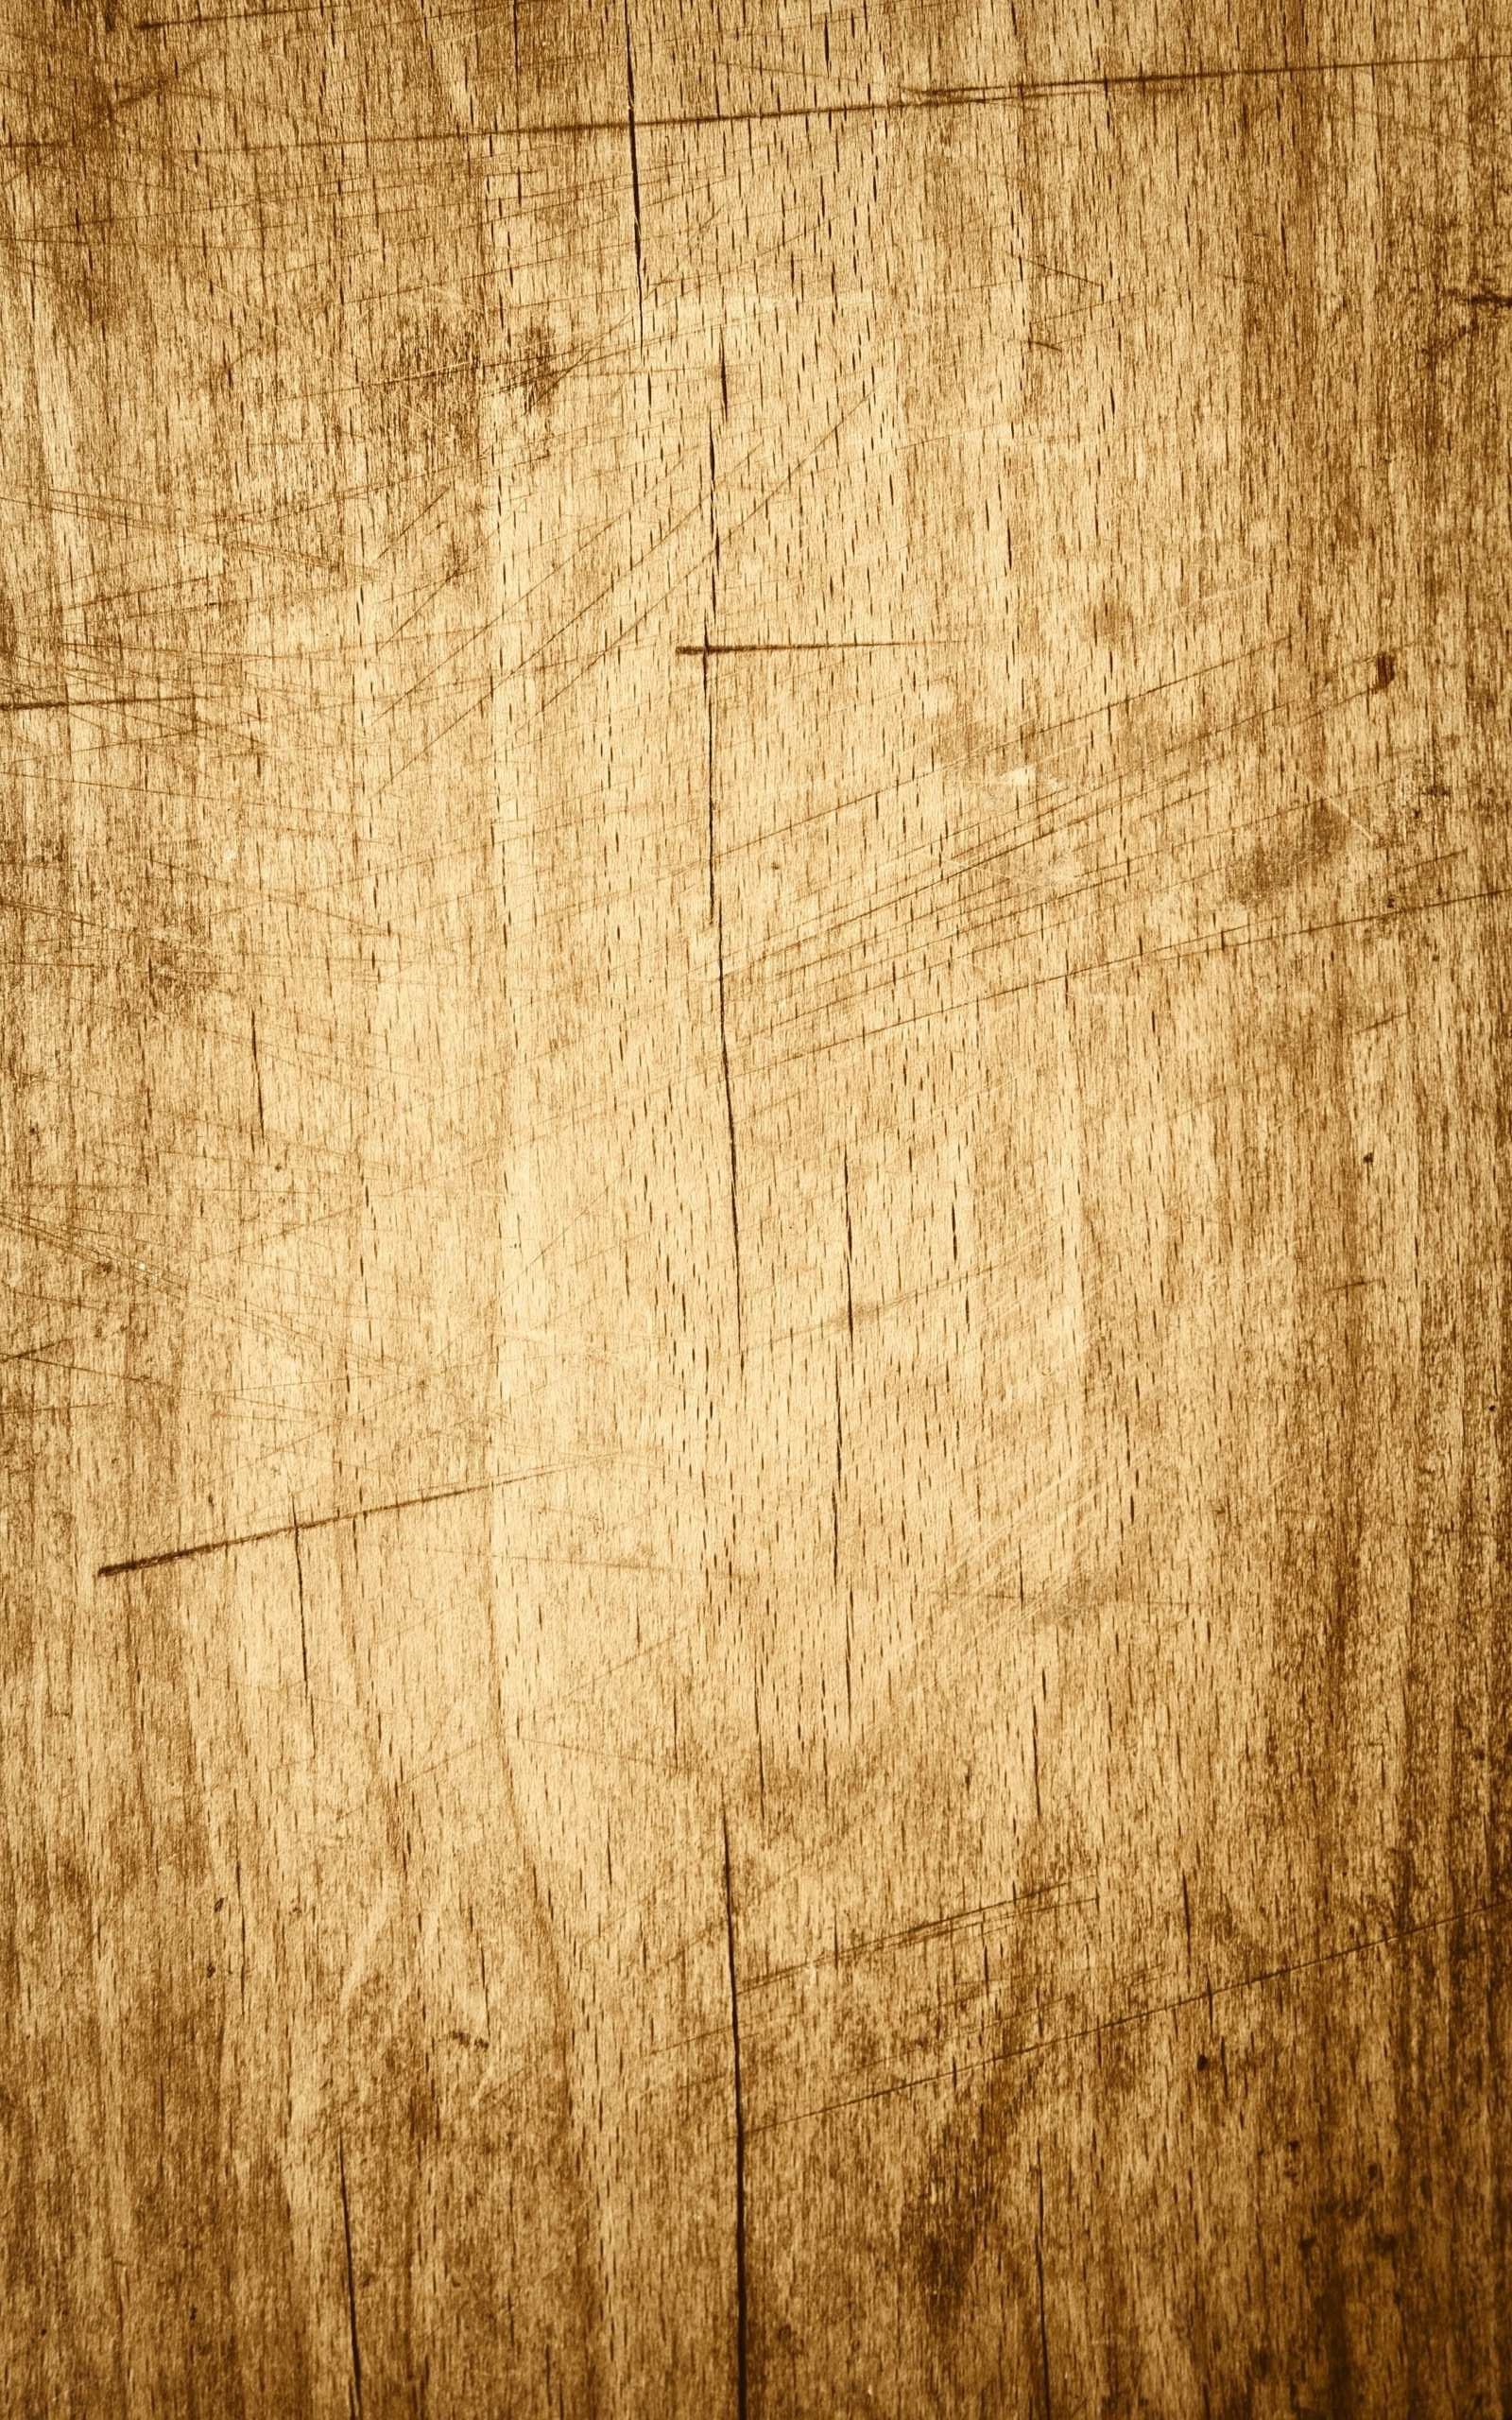 Light Wood Background 183 ① Download Free Cool Full Hd